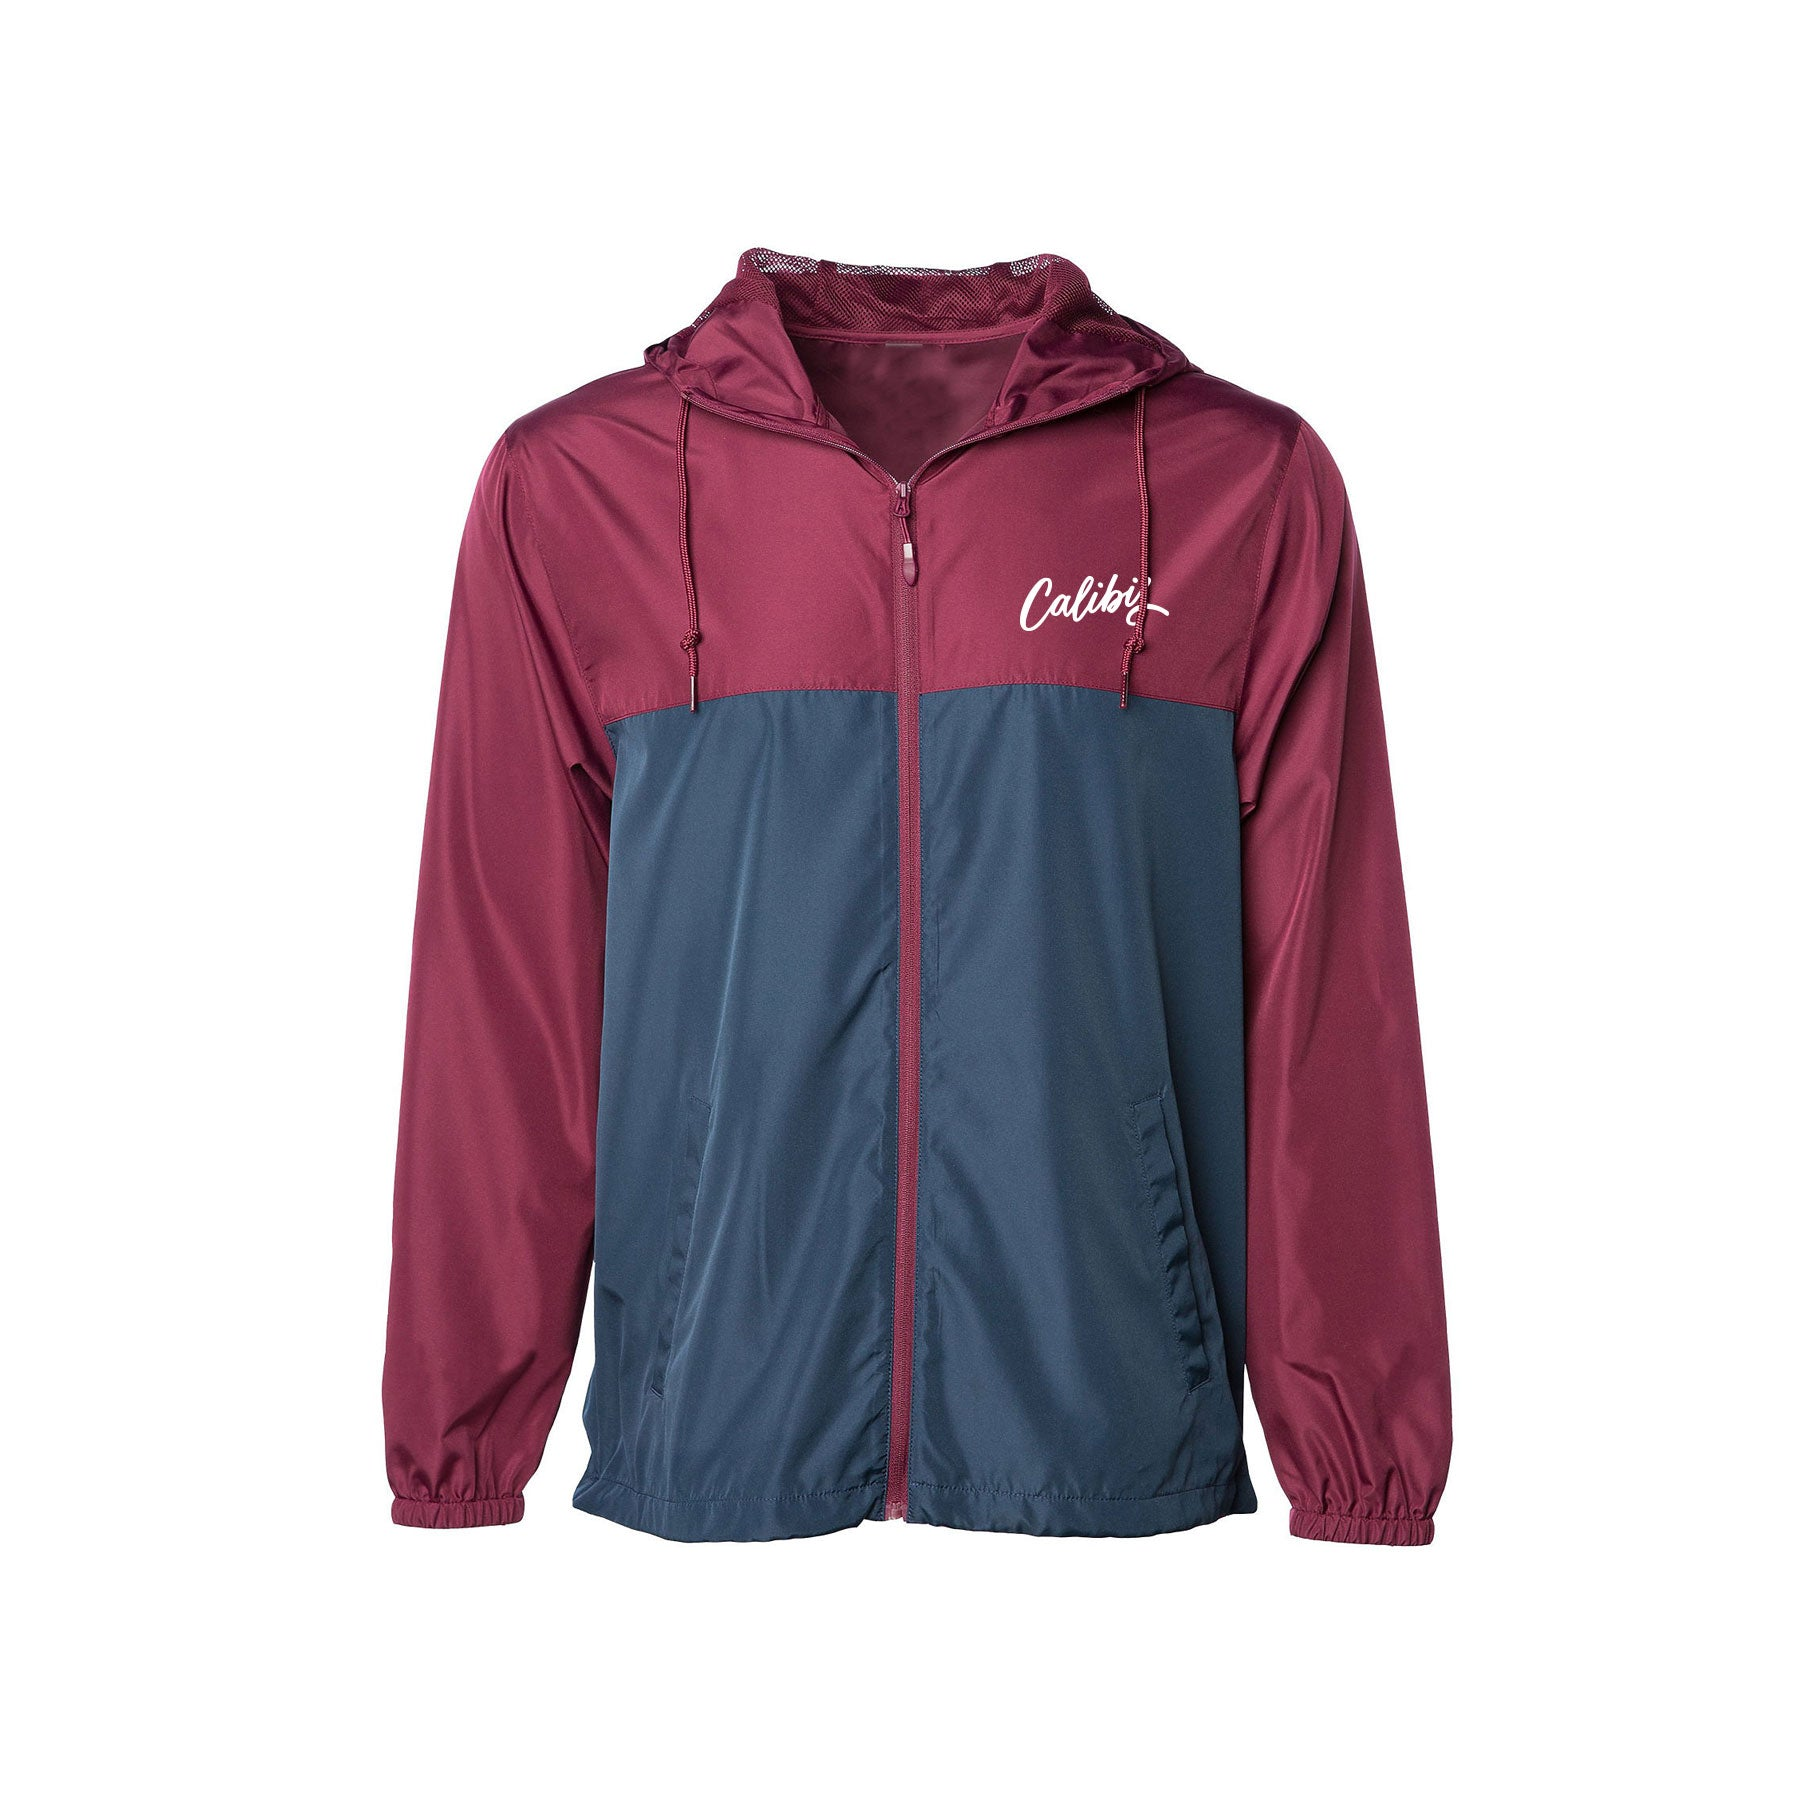 Scribble Windbreaker by Calibis Clothing